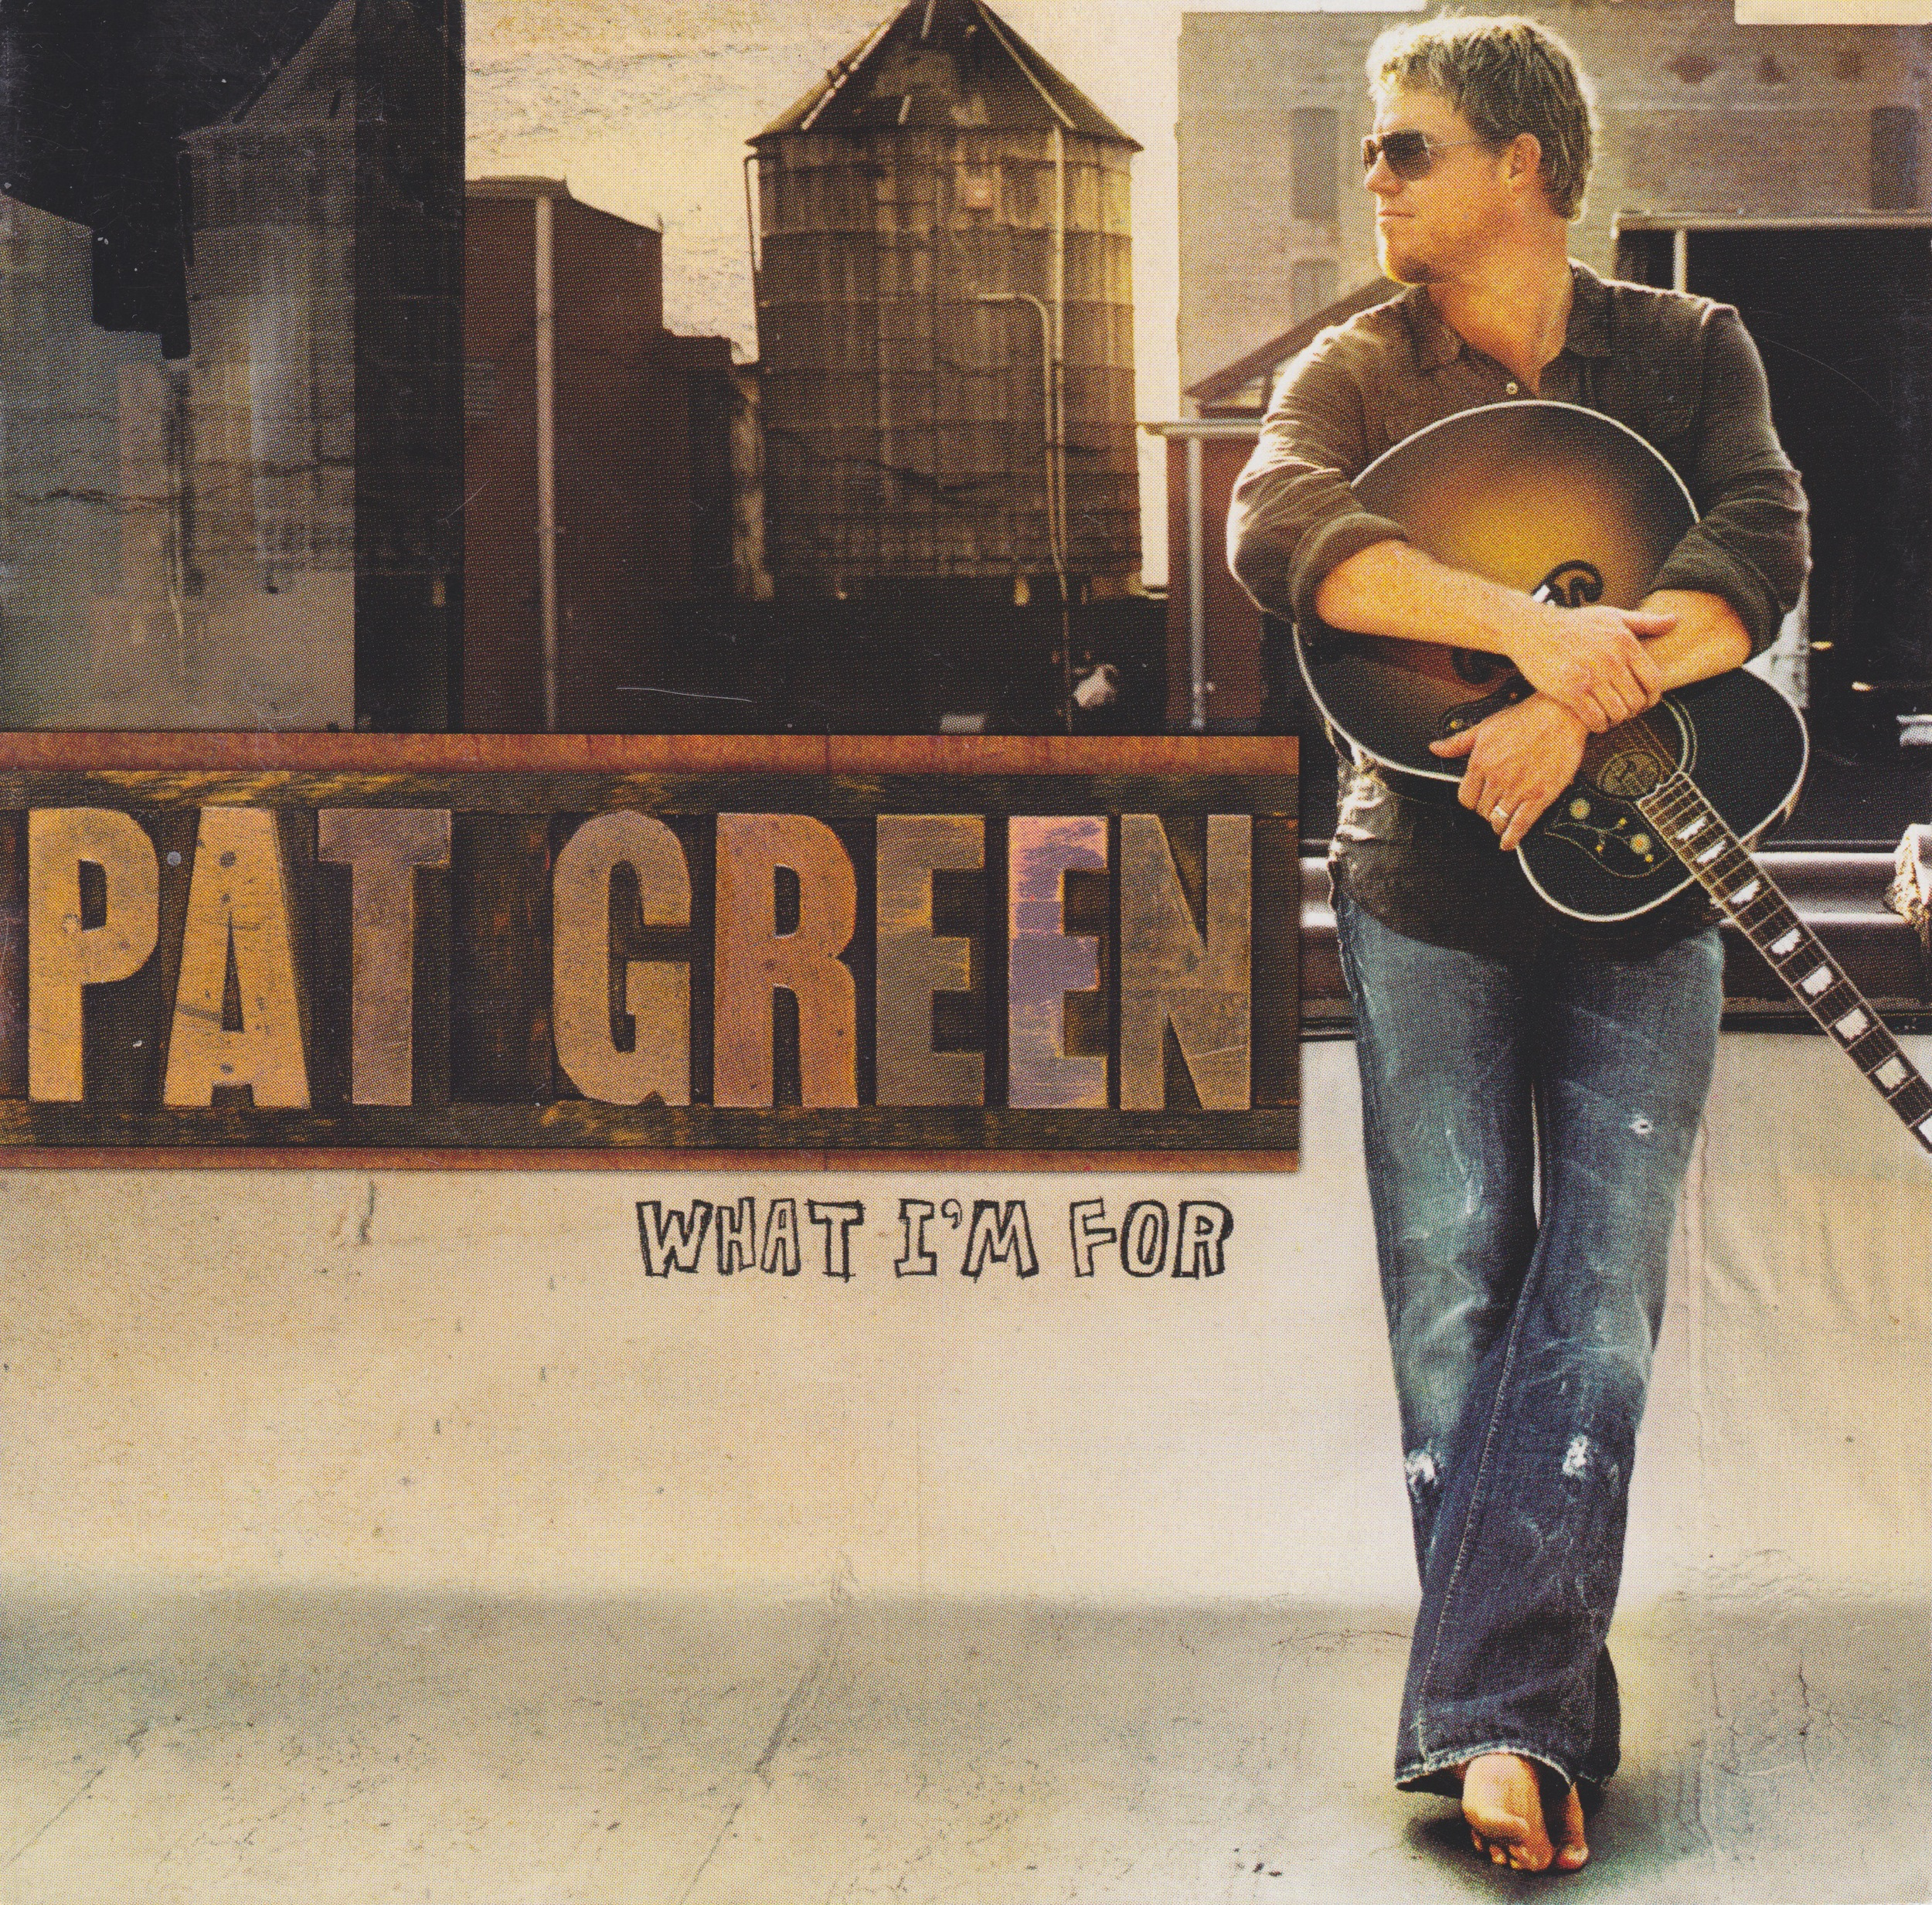 Pat Green, What I'm For